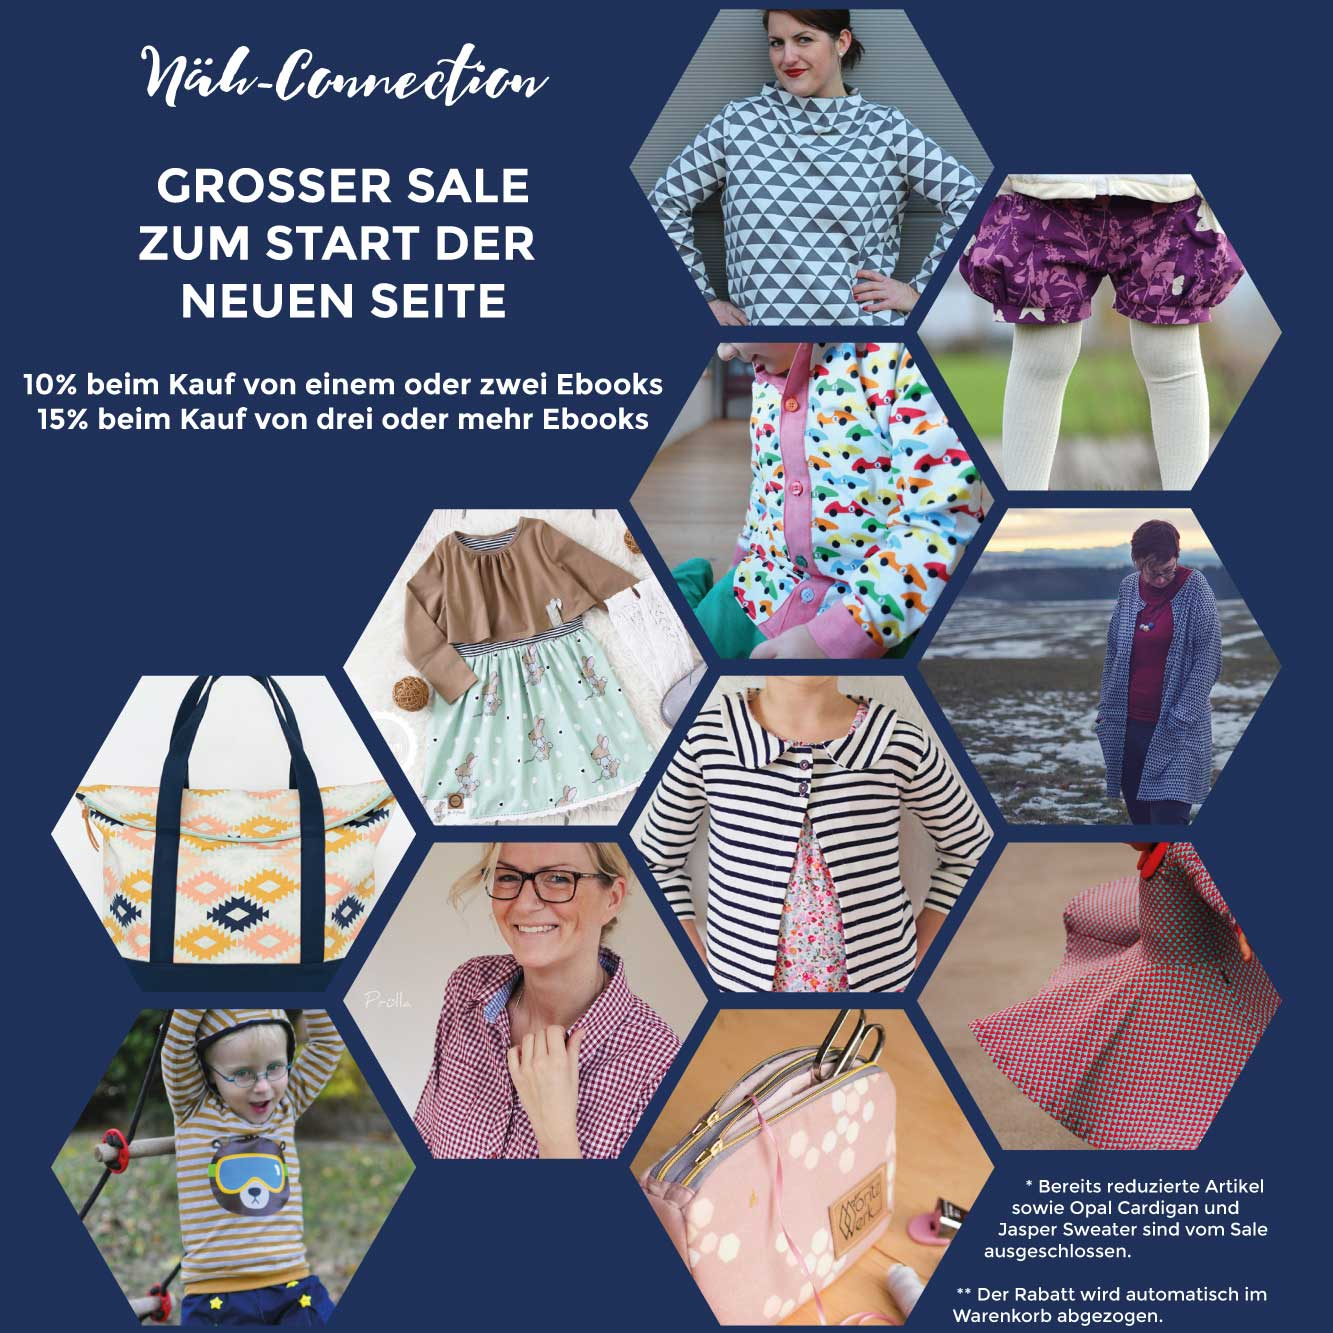 Großer Näh-Connection Sale